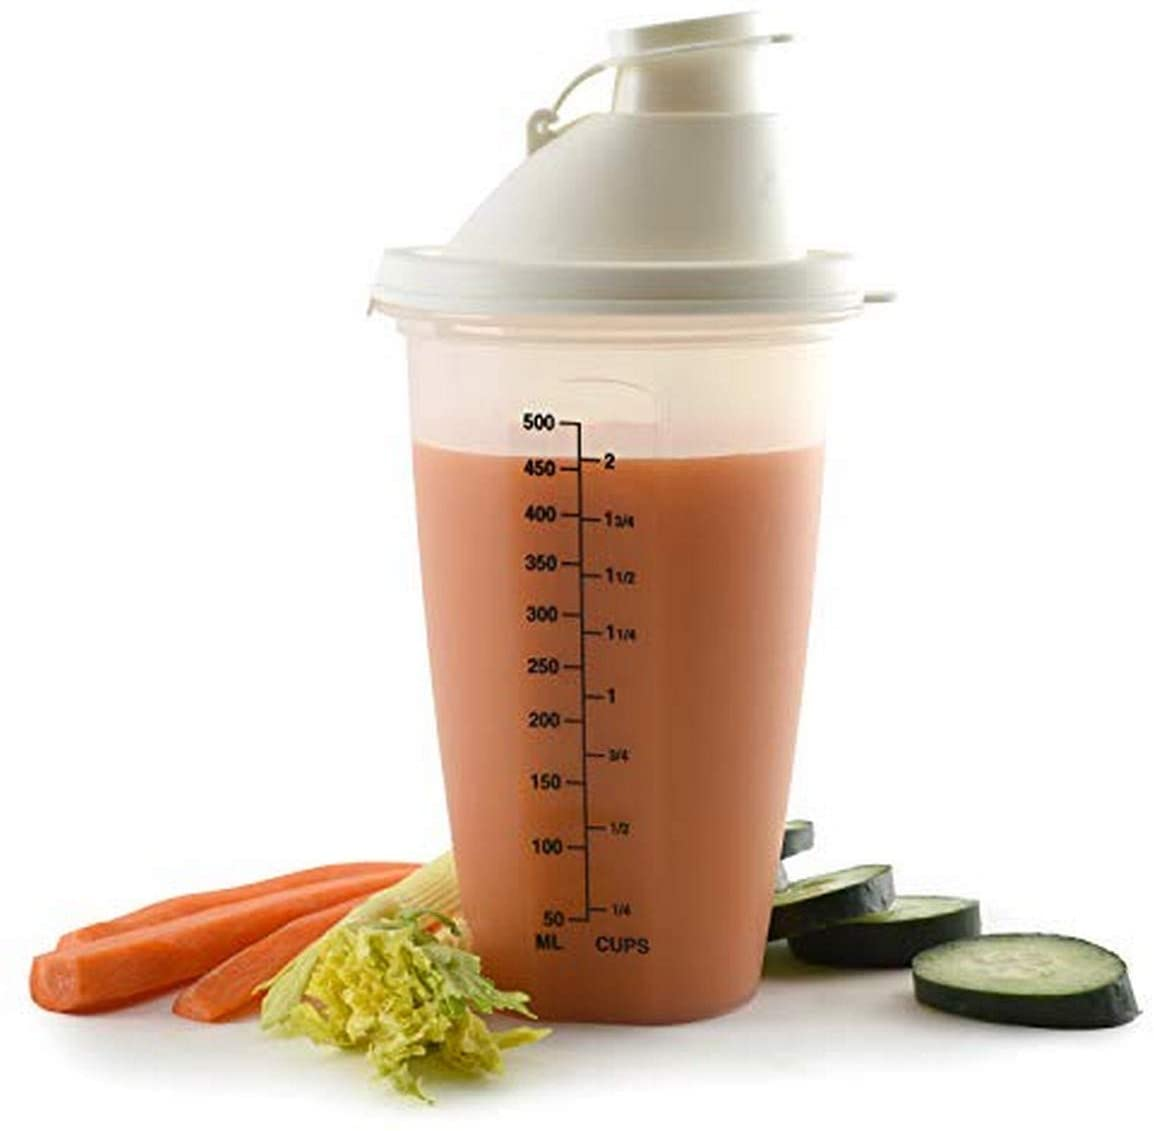 Norpro Measuring Shaker, 2-Cup, 8 Inch